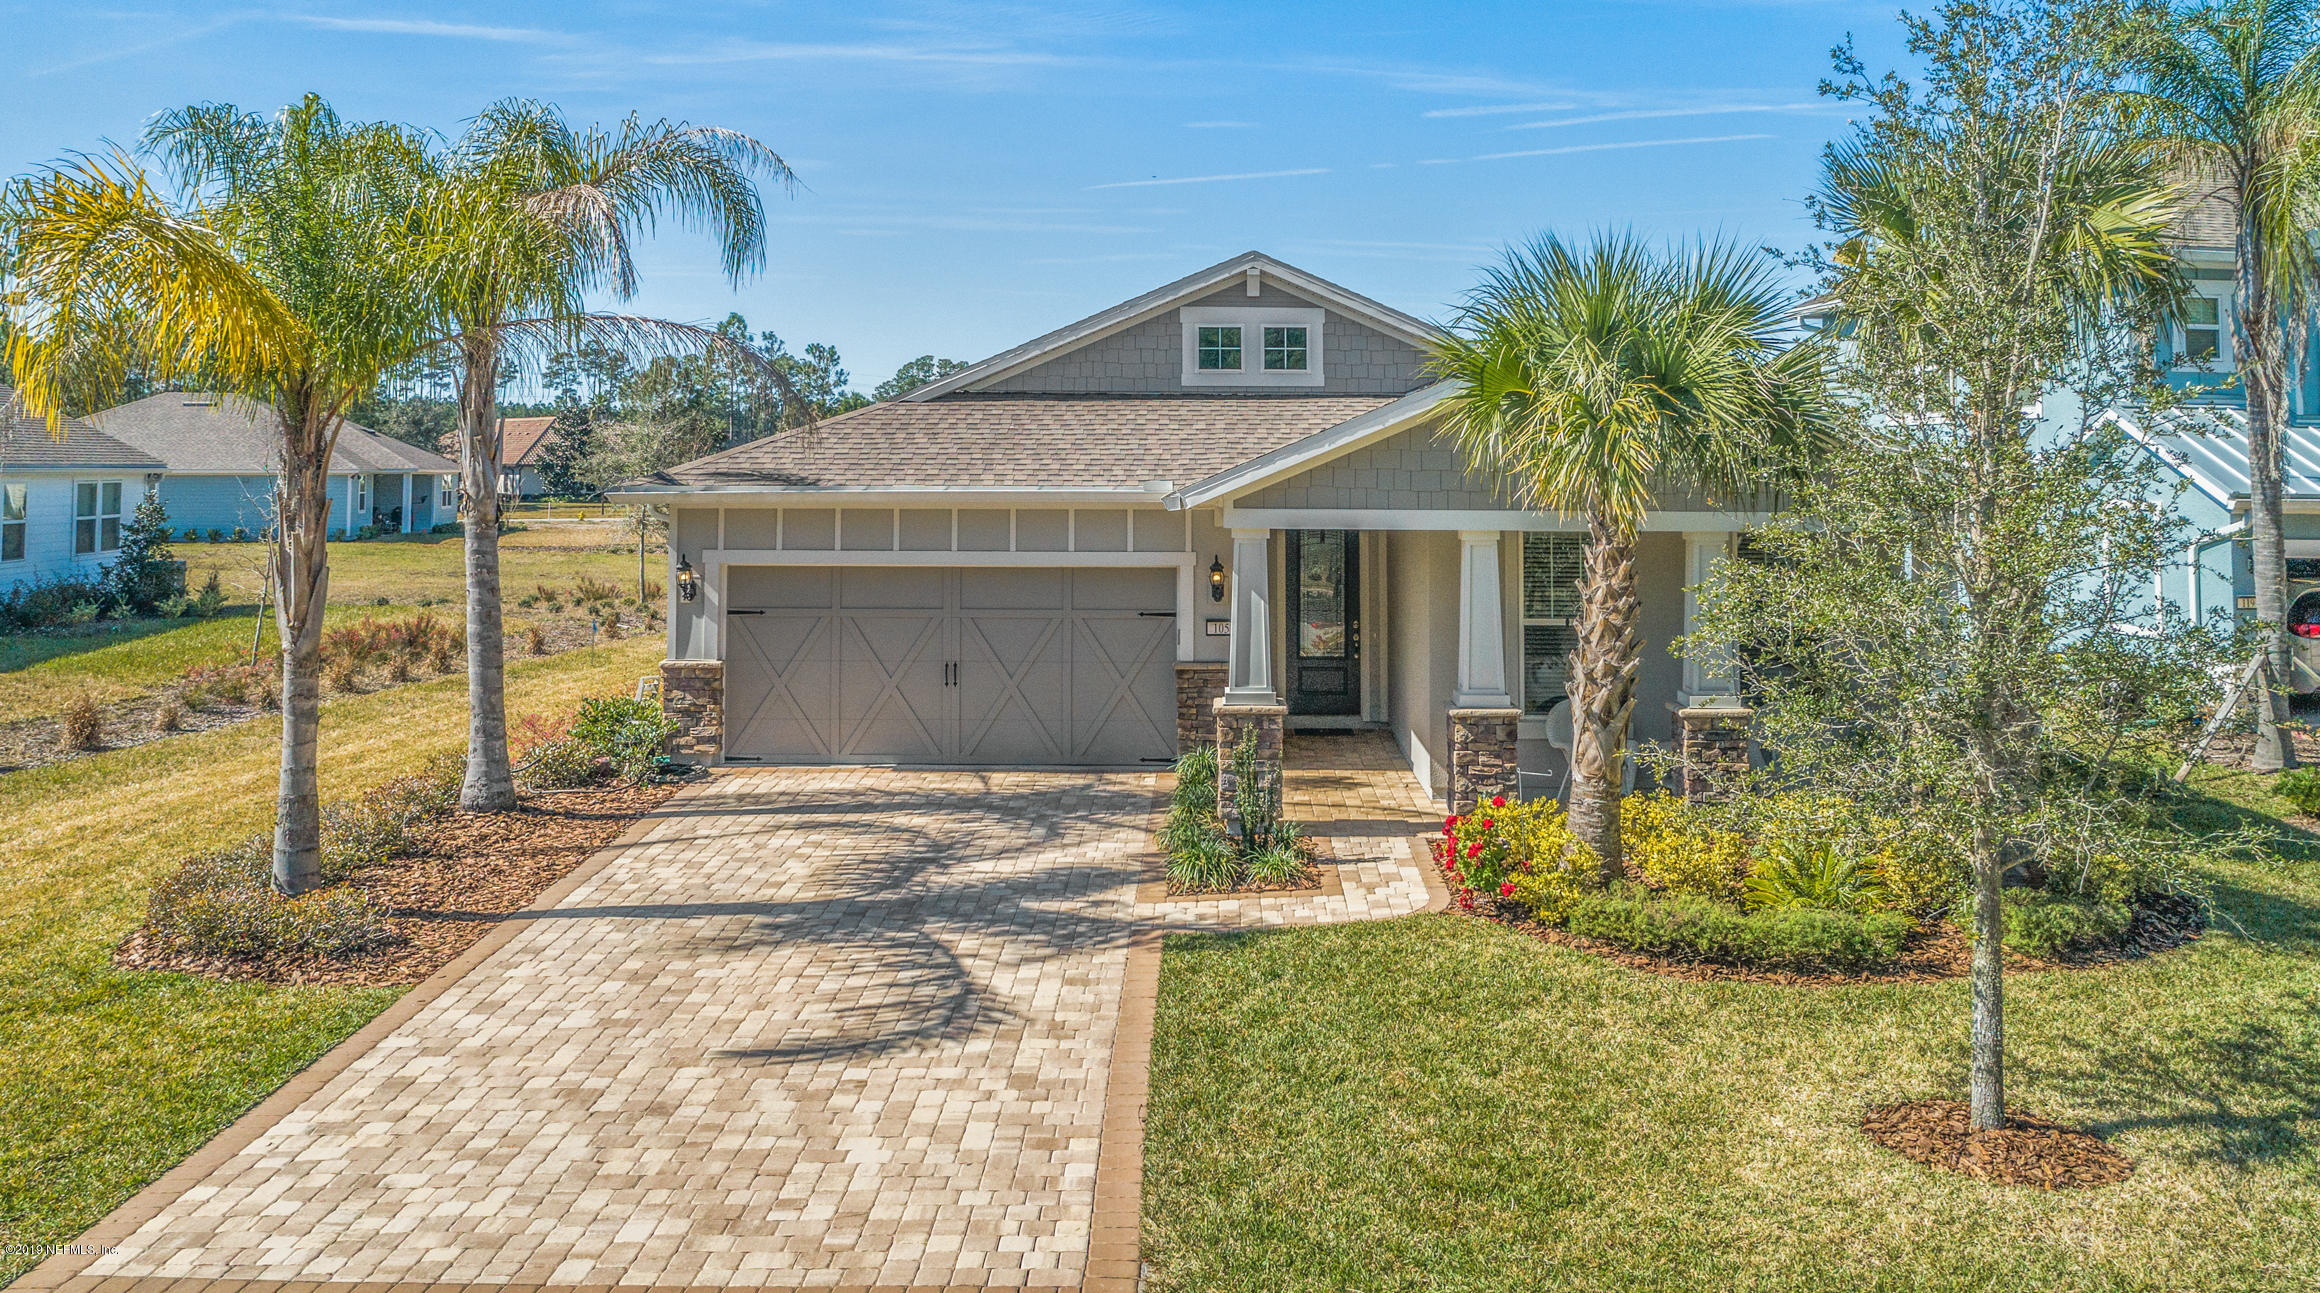 105 LAKEFRONT, ST AUGUSTINE, FLORIDA 32095, 3 Bedrooms Bedrooms, ,2 BathroomsBathrooms,Residential - single family,For sale,LAKEFRONT,978940